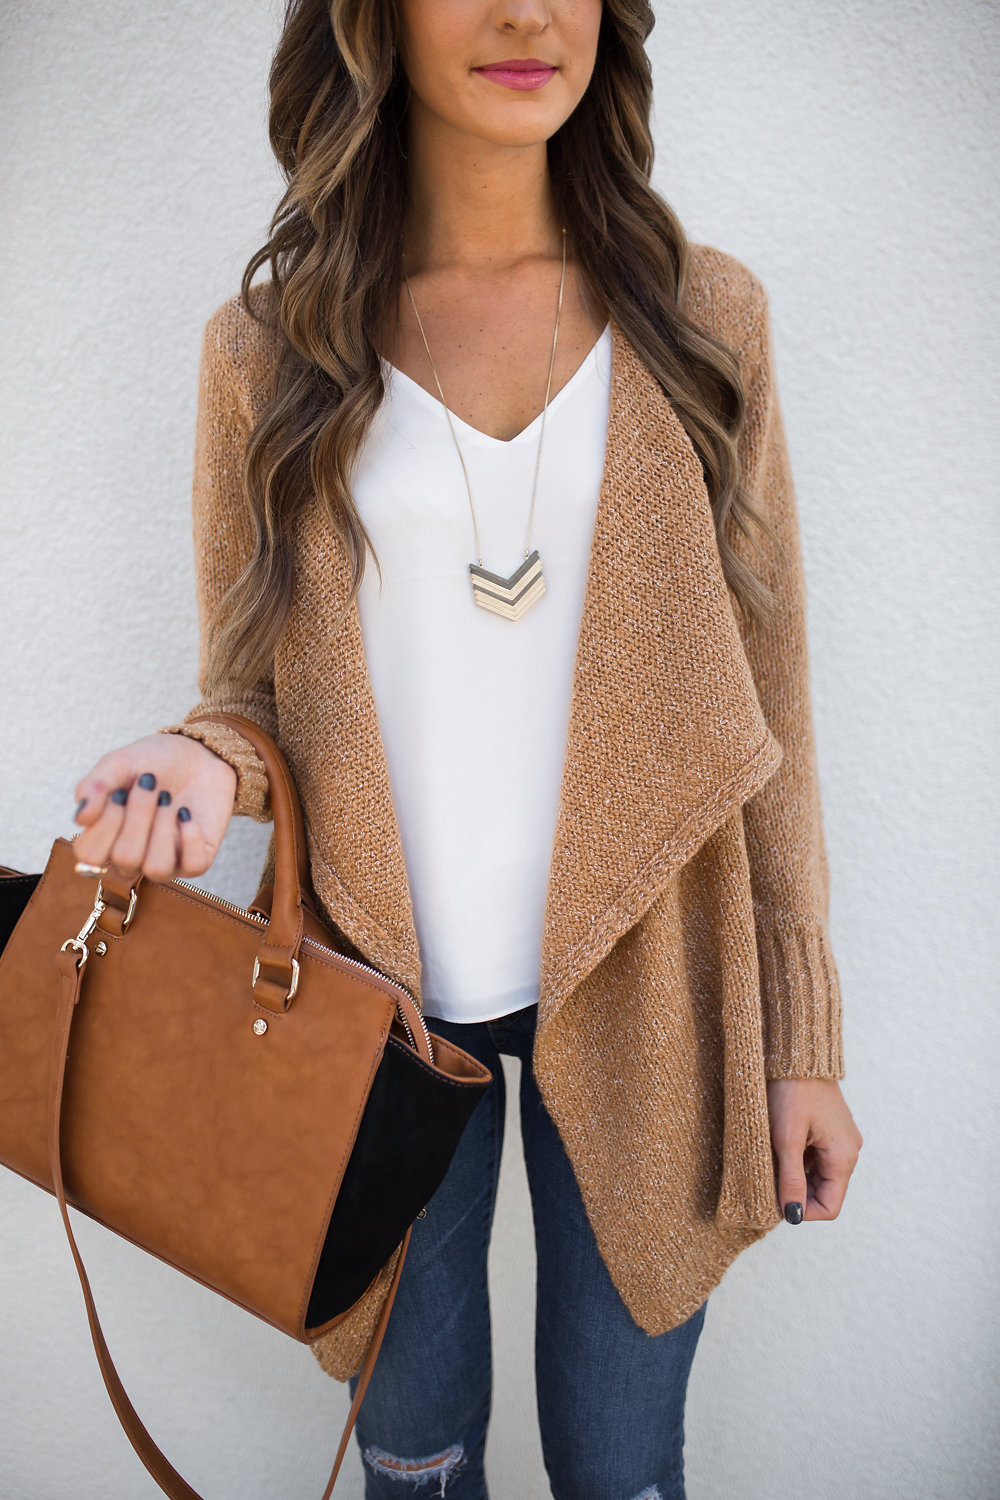 My Cardigan Obsession Lauren Kay Sims